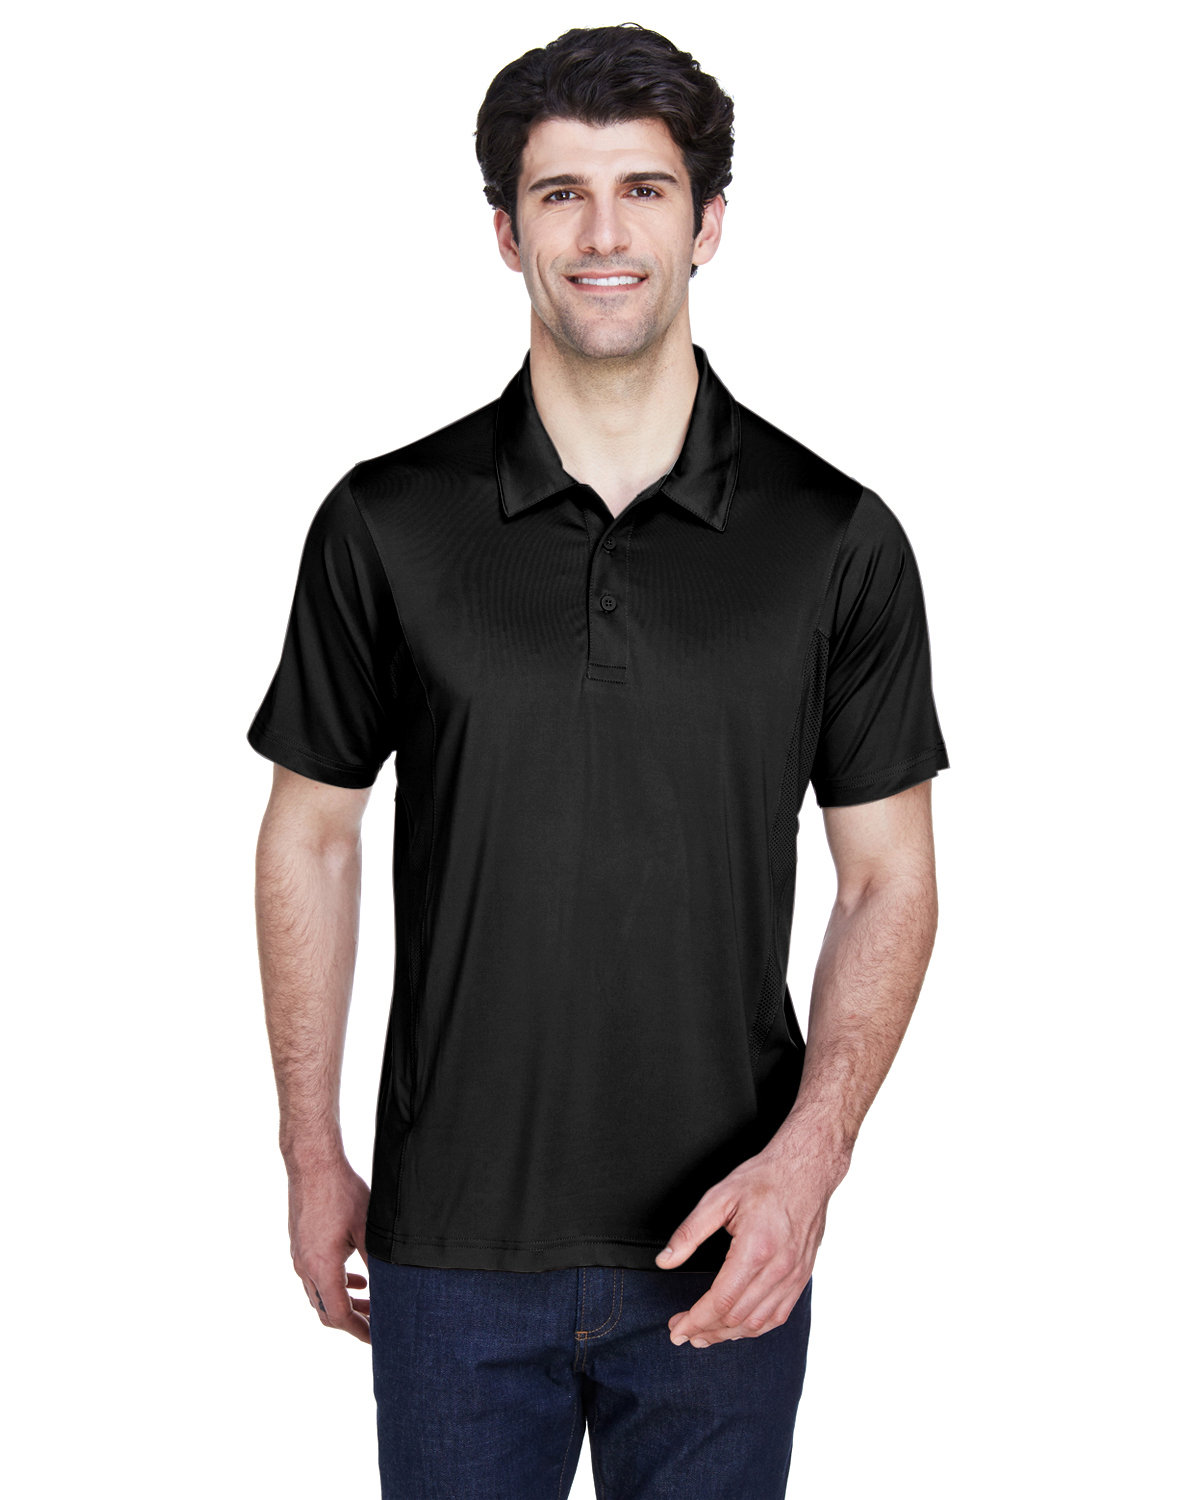 -SP SCARLET RED-4XL TT20 Team 365 mens Charger Performance Polo